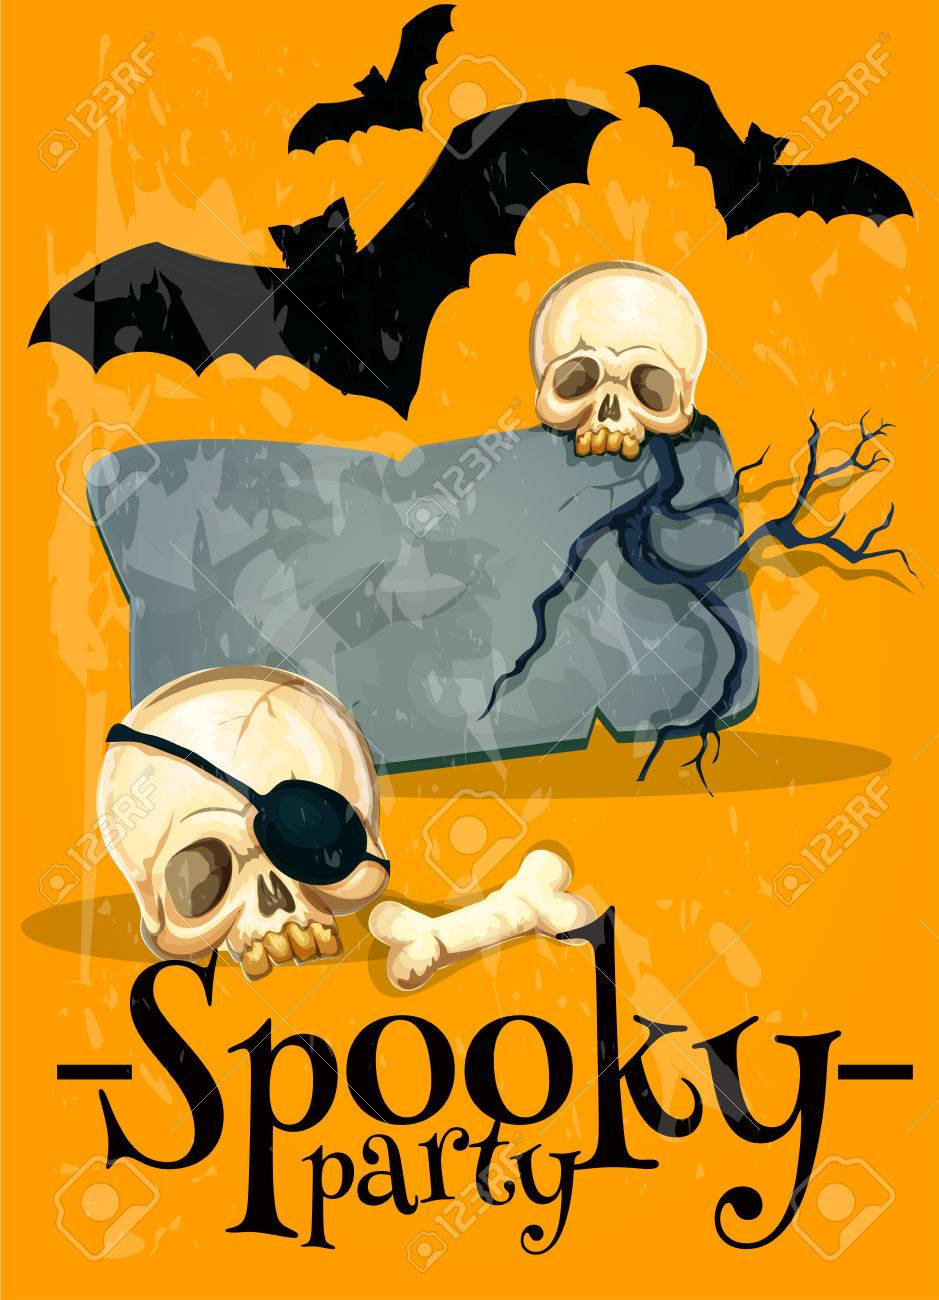 Invitation Poster To Spooky Halloween Party Vector Horror Style